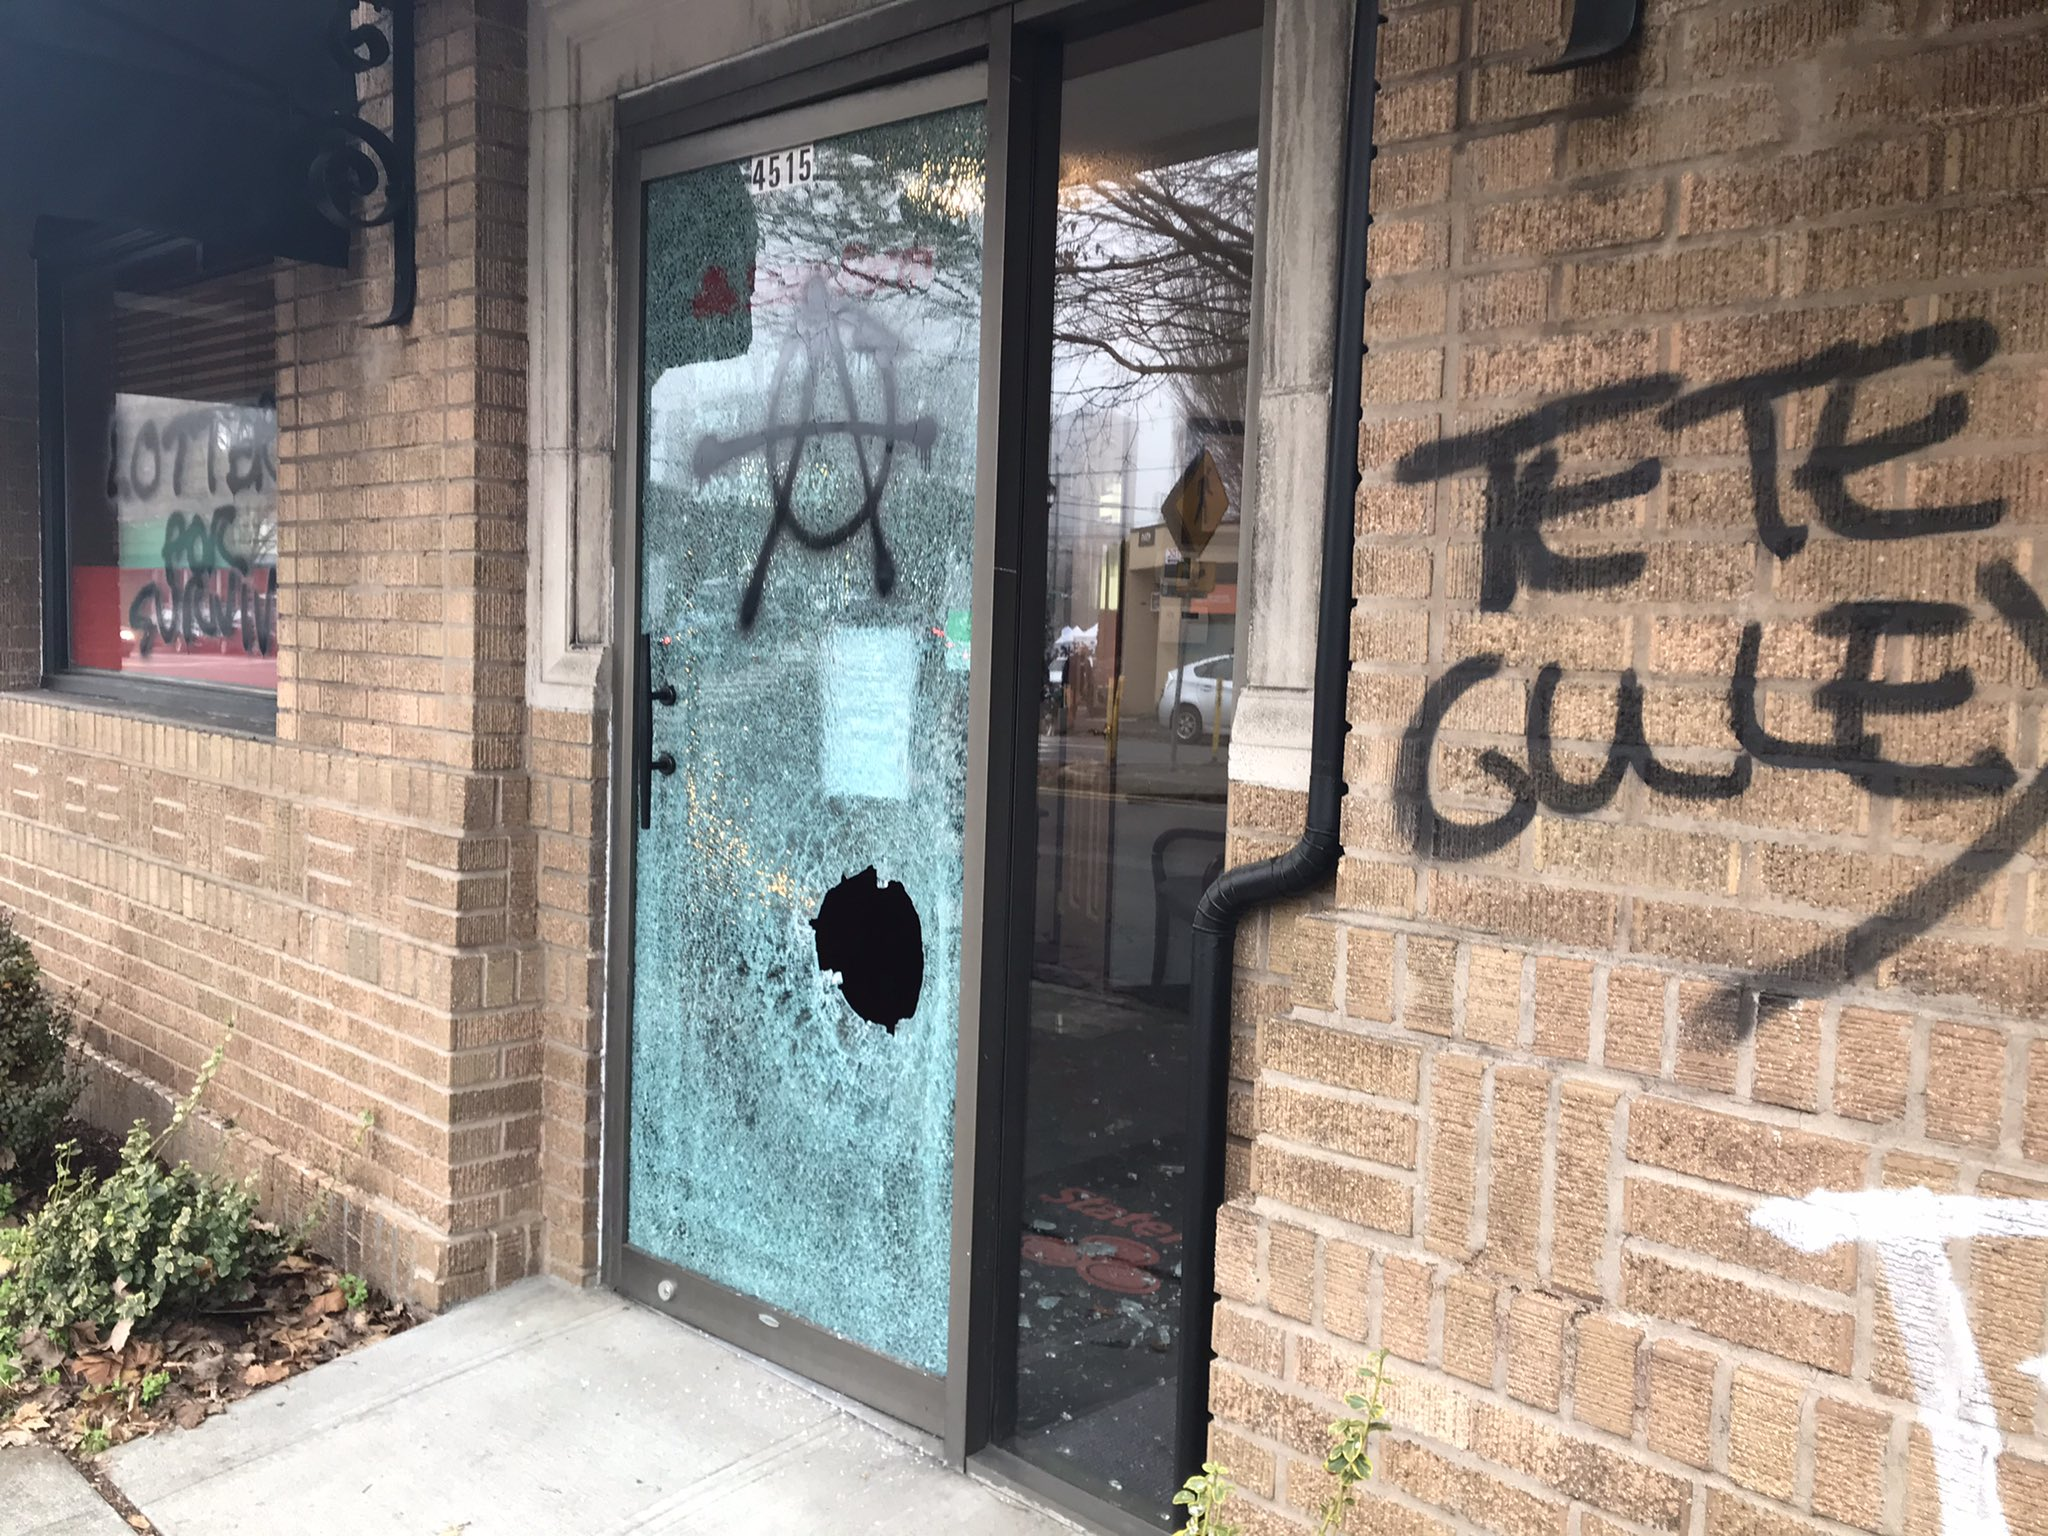 Police said a group of about 50 people vandalized businesses along Northeast Sandy Boulevard on Friday night, Nov. 20, 2020 (KATU){ }